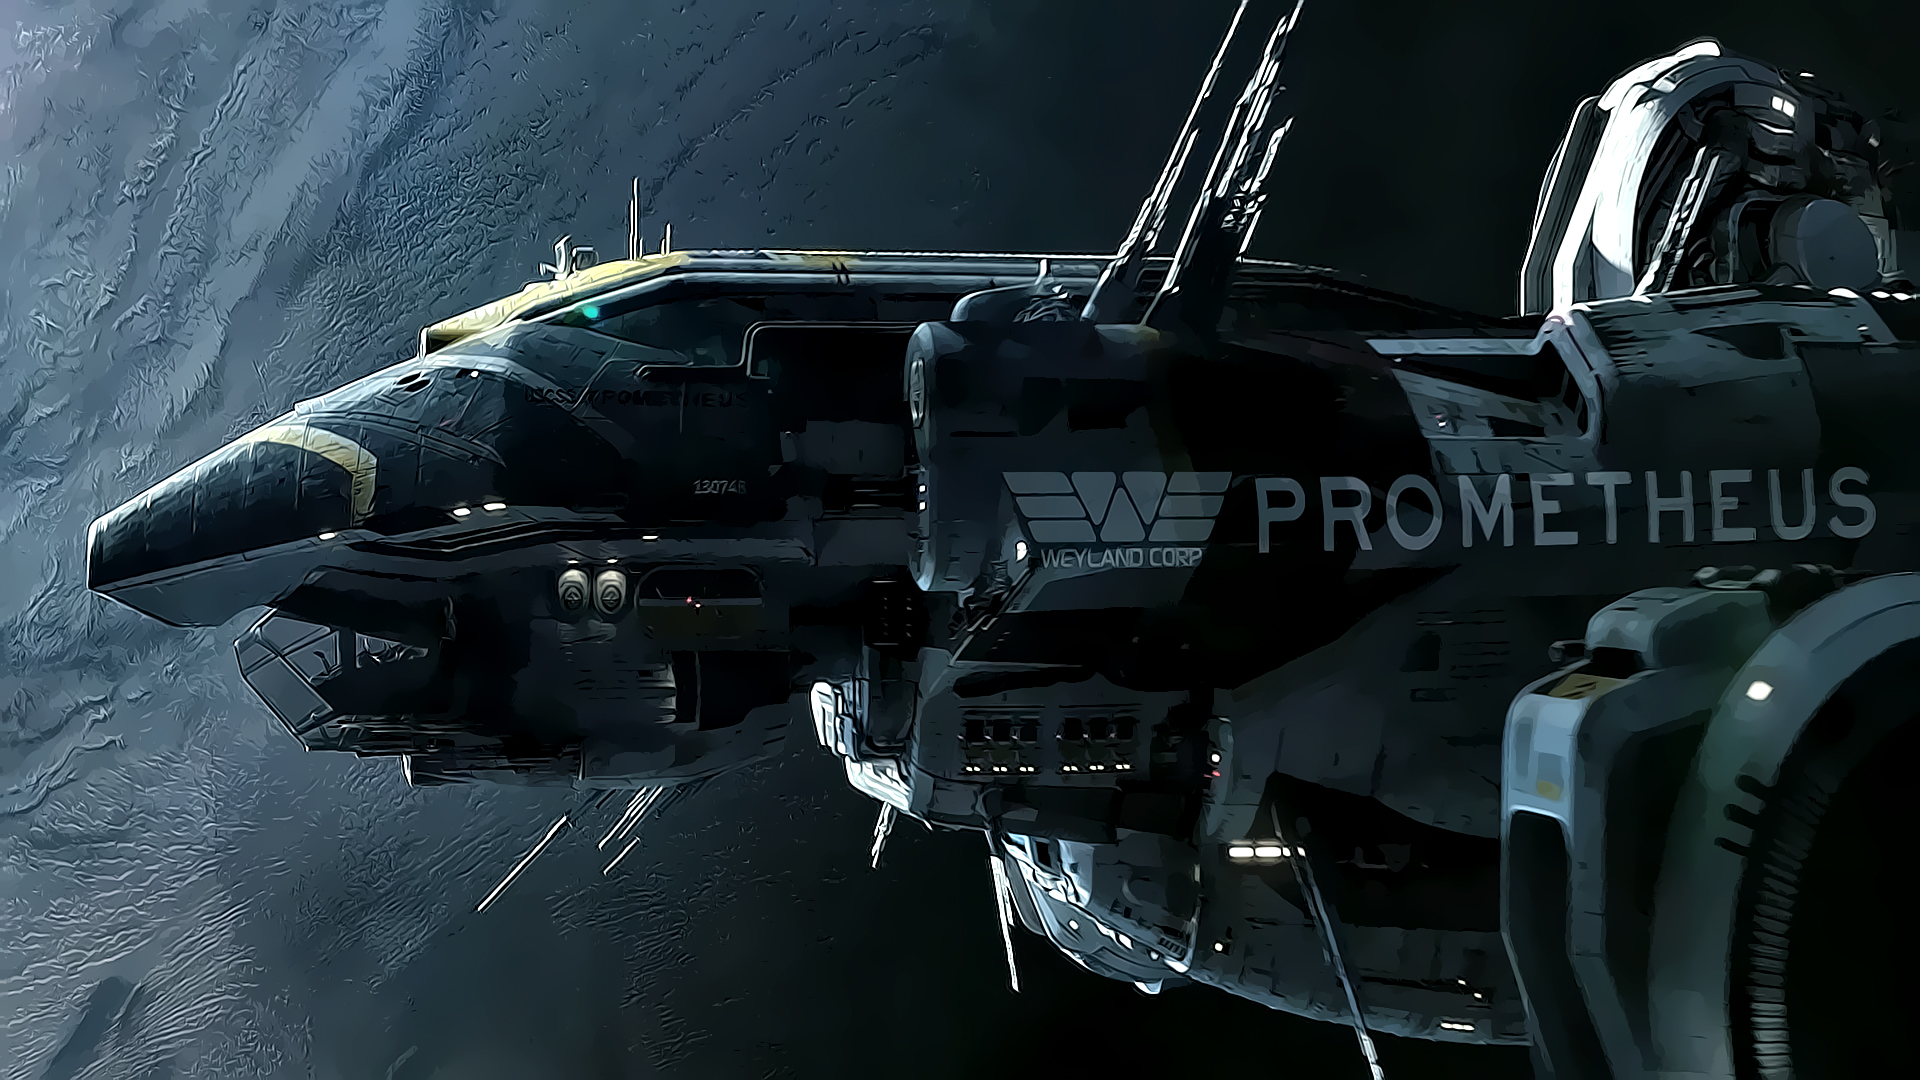 daily featured wallpaper   Prometheus   HQ Wallpapers   HQ Wallpapers 1920x1080